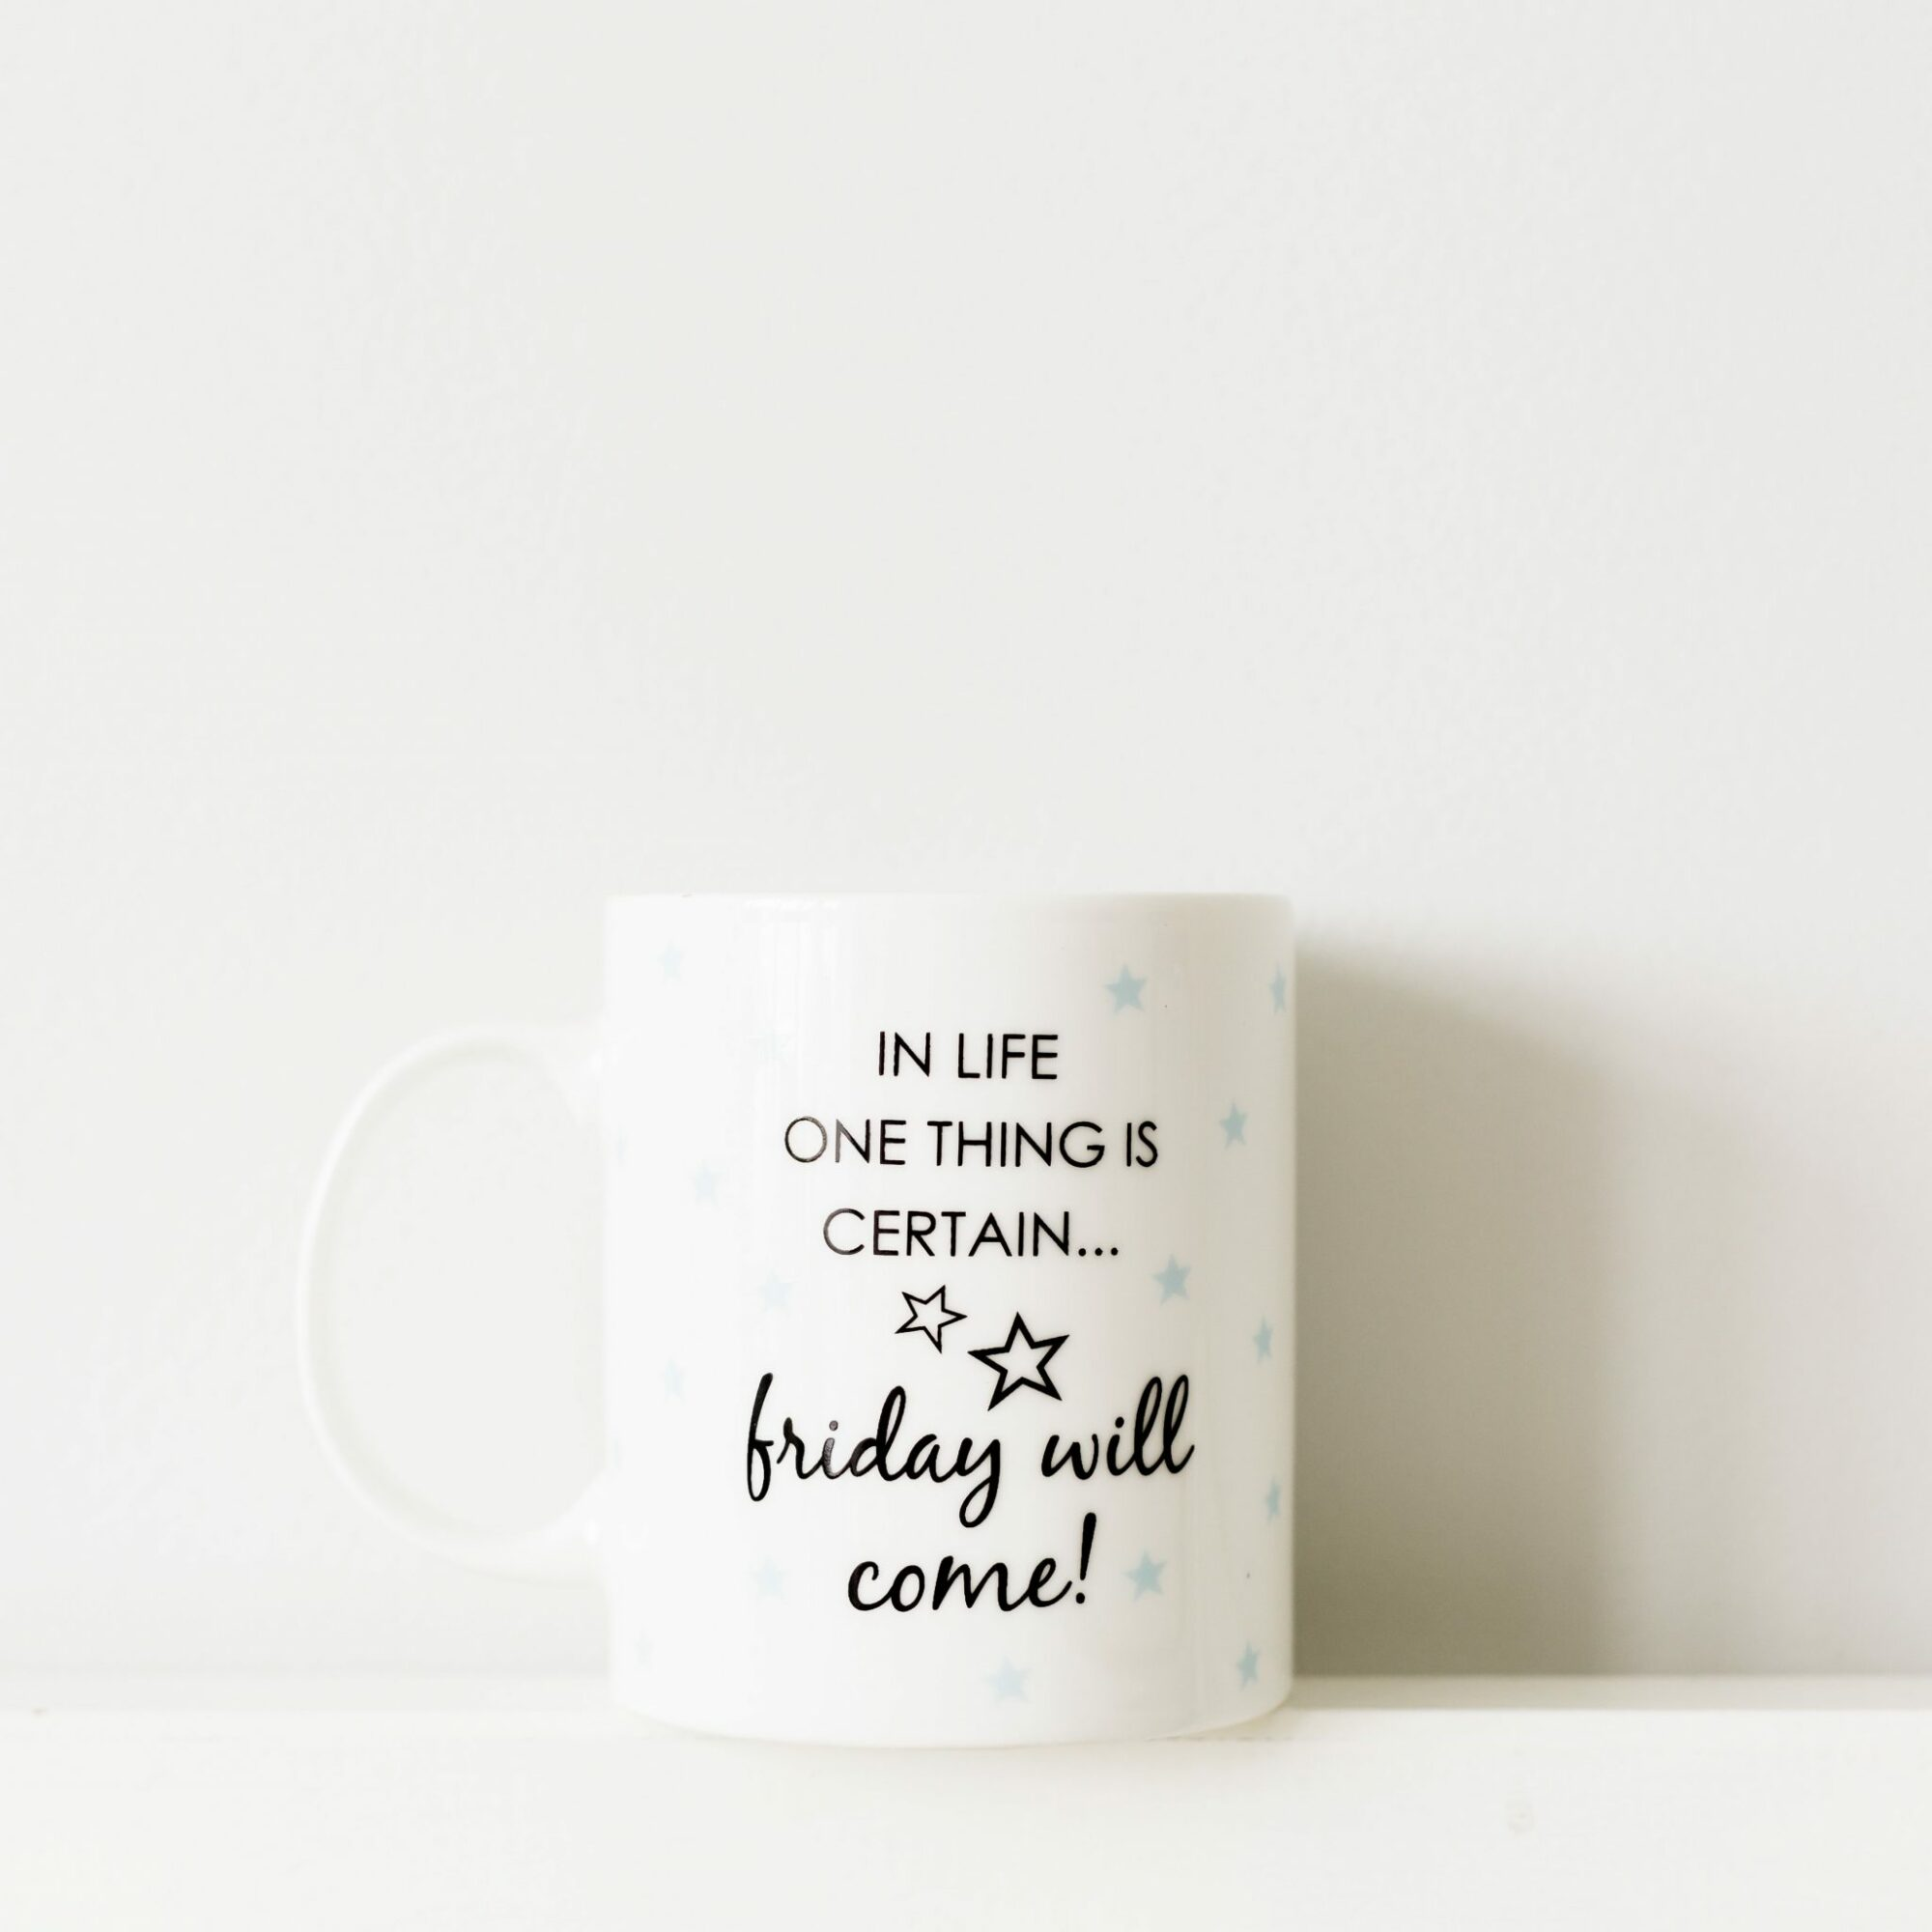 Friday Will Come Office Humour Mug